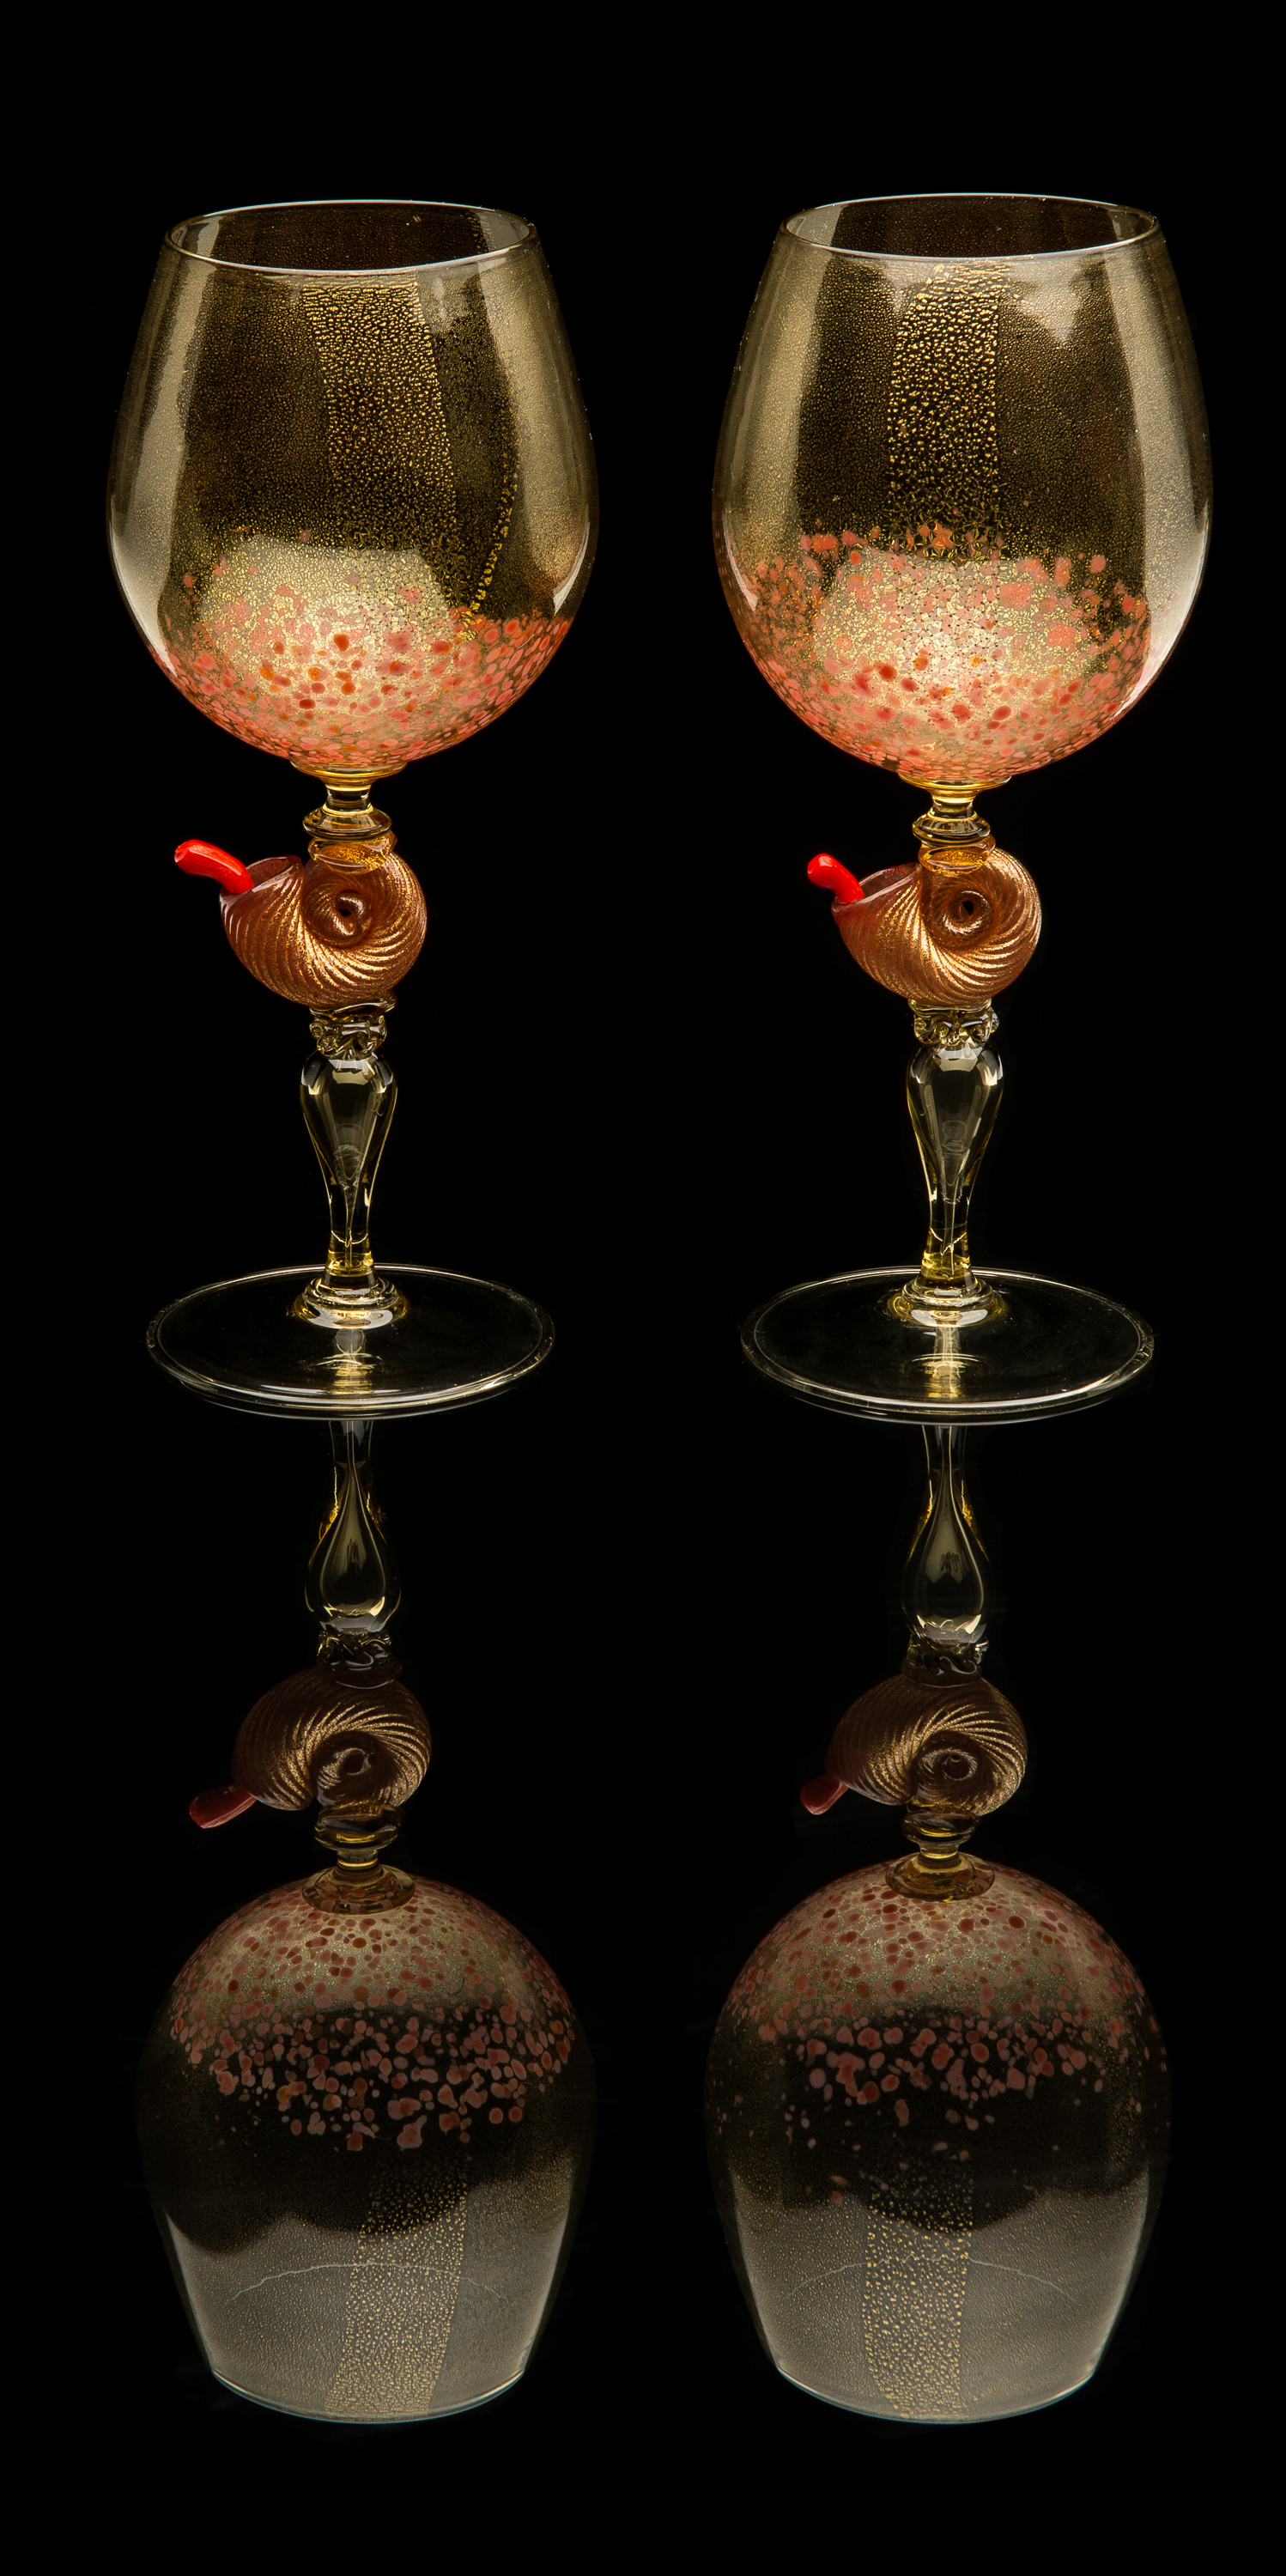 Unknown,  Pair of Goblets with Nautilus Shell Stems  (circa 1920, glass, 9.5 inches), VV.772